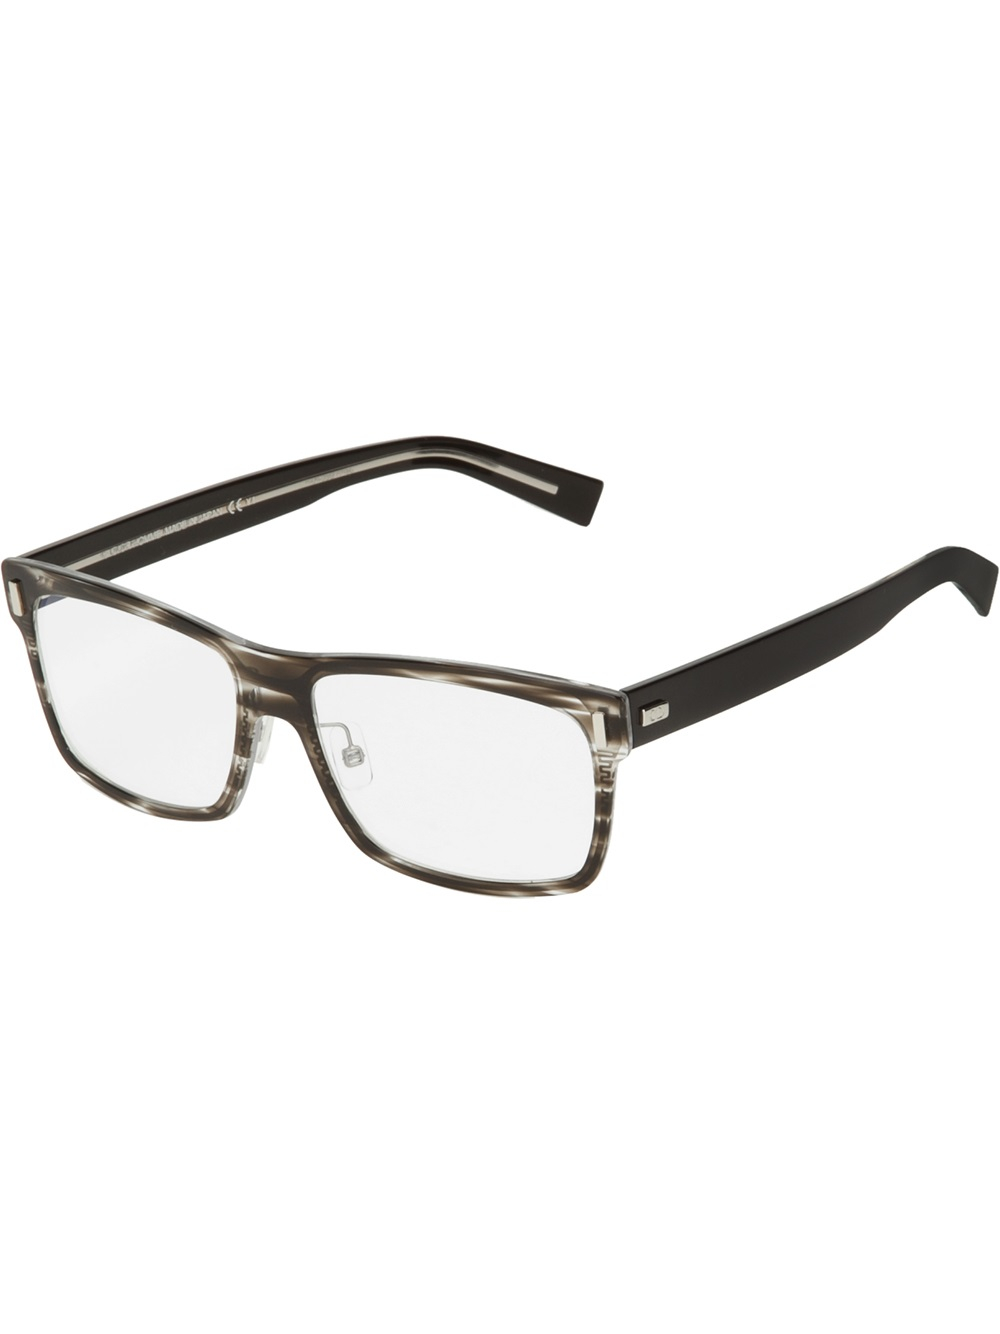 e398a3cb494a Lyst - Dior Homme  Blacktie 2.0 B  Glasses in Black for Men